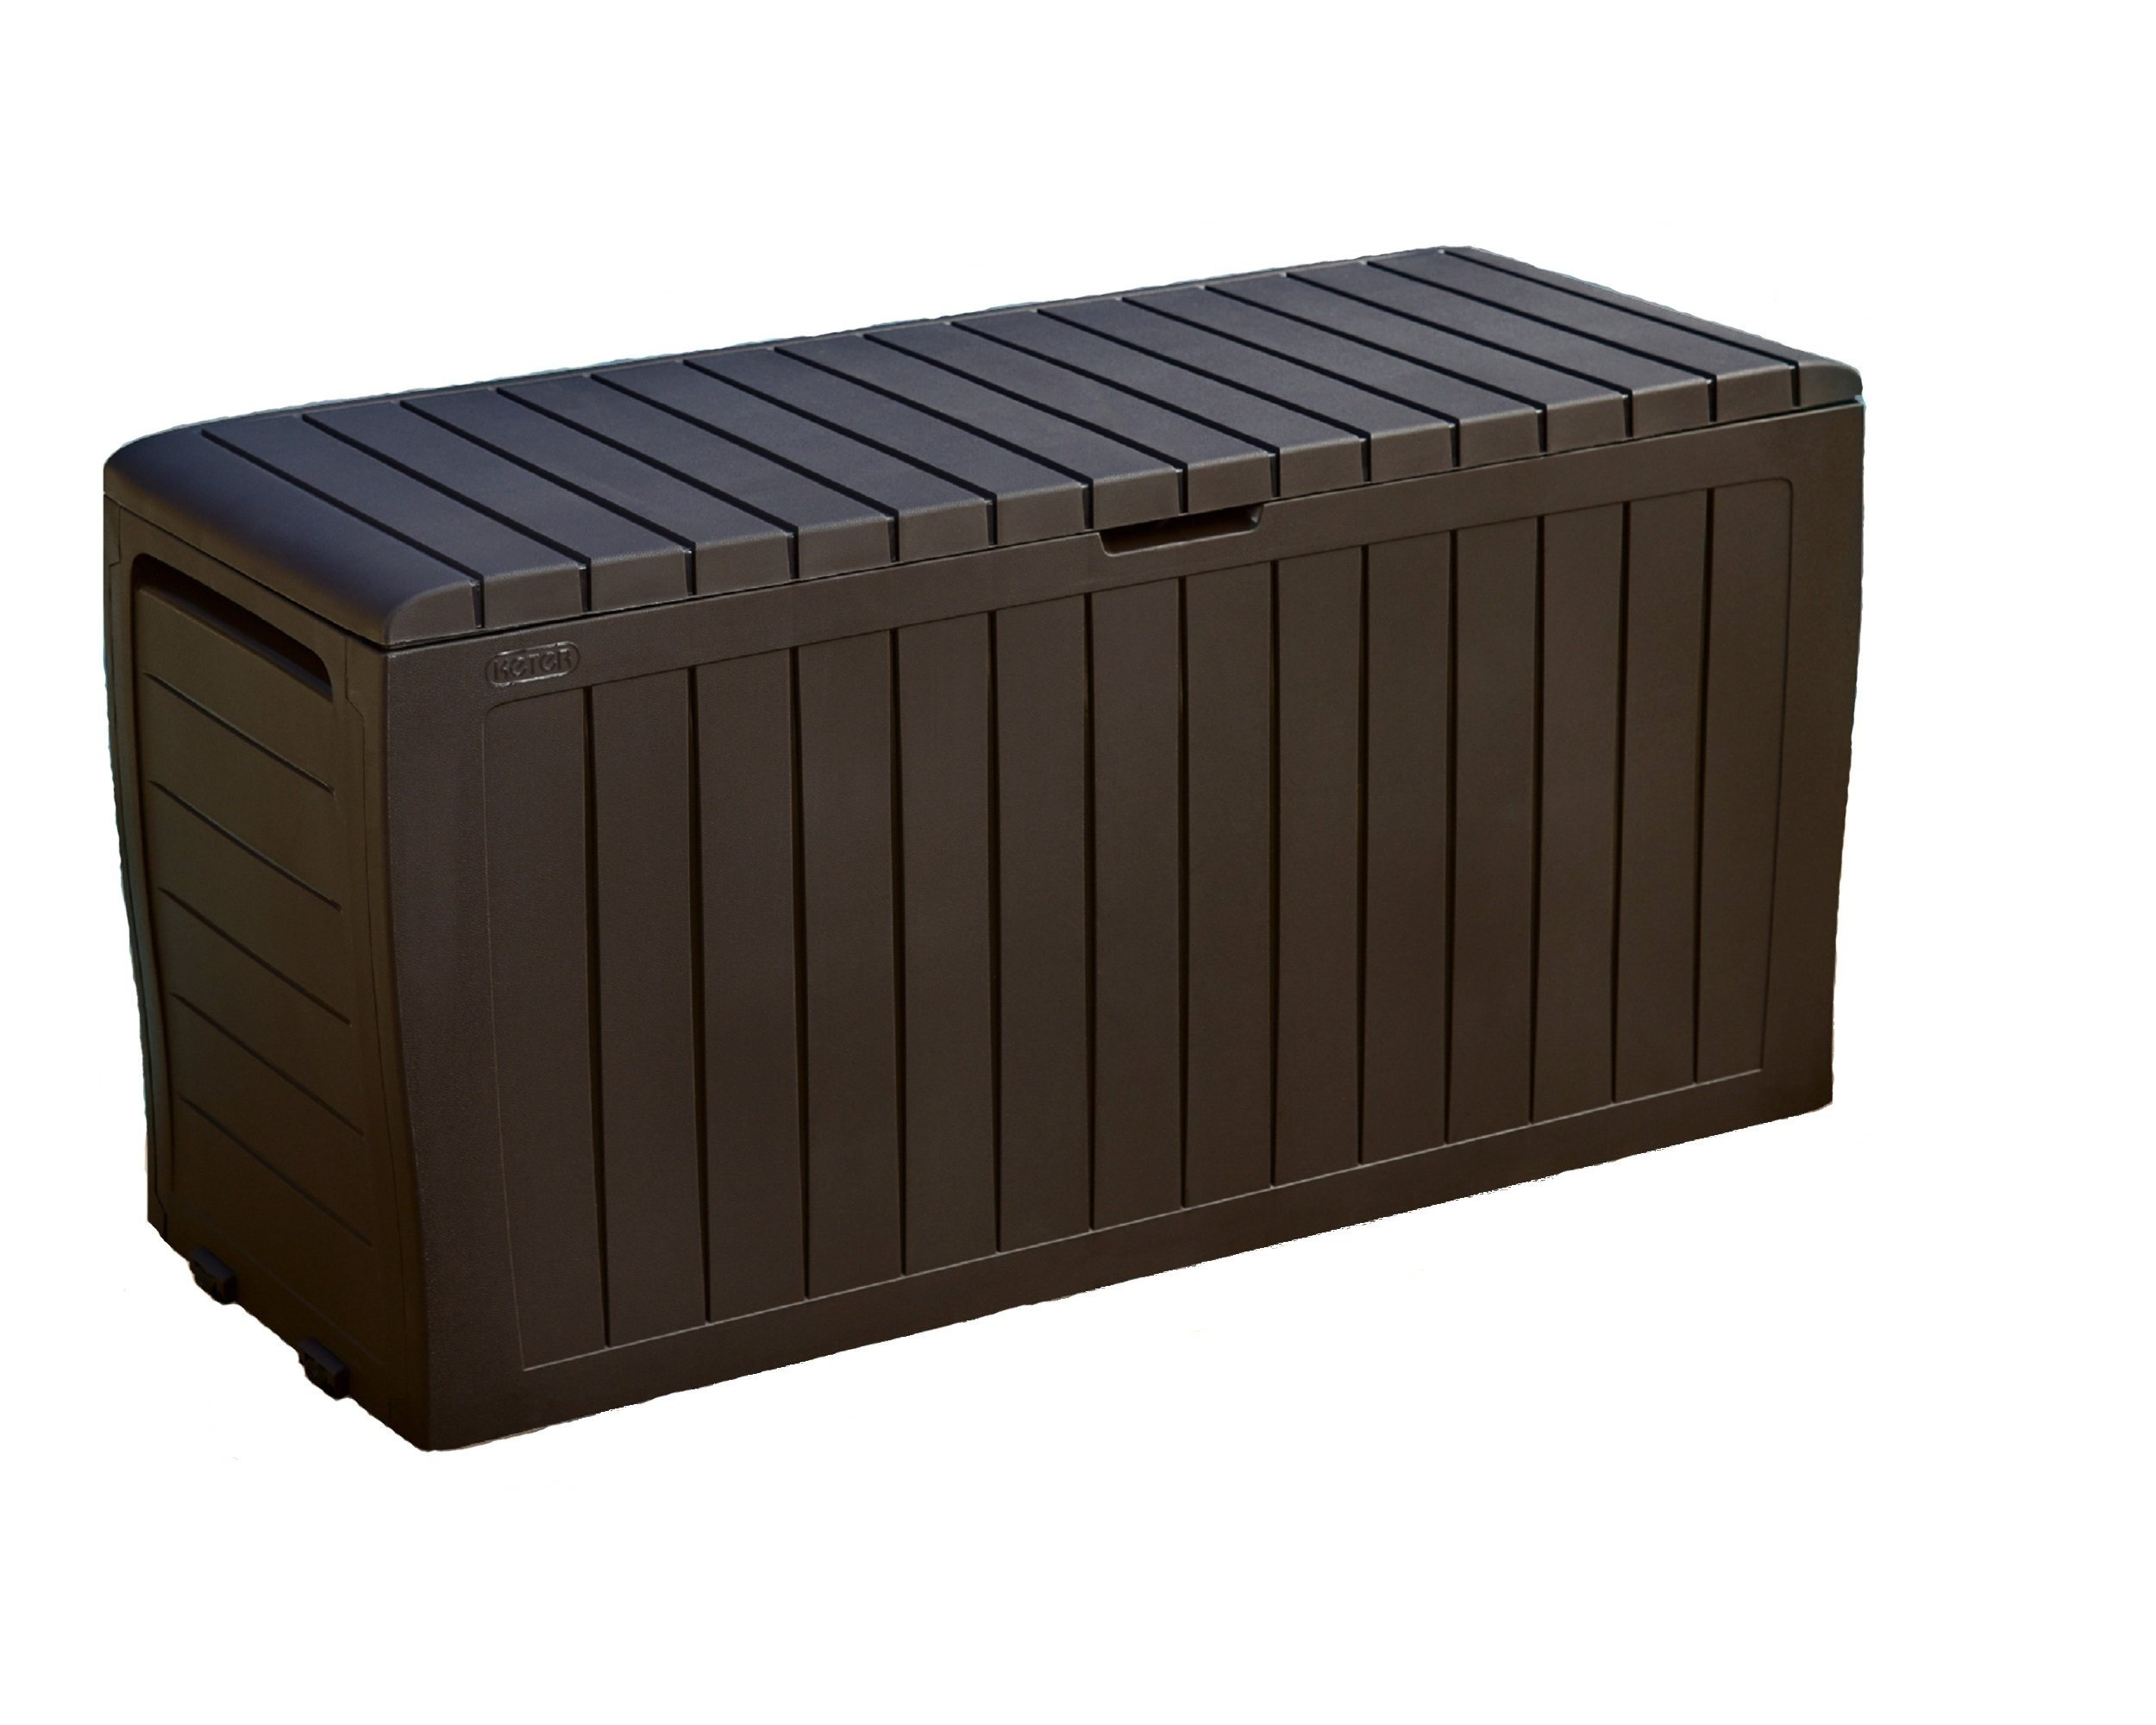 Keter Marvel Plus 71 Gallon Resin Plastic Wood Look All Weather Outdoor Storage Deck Box, Brown by Keter